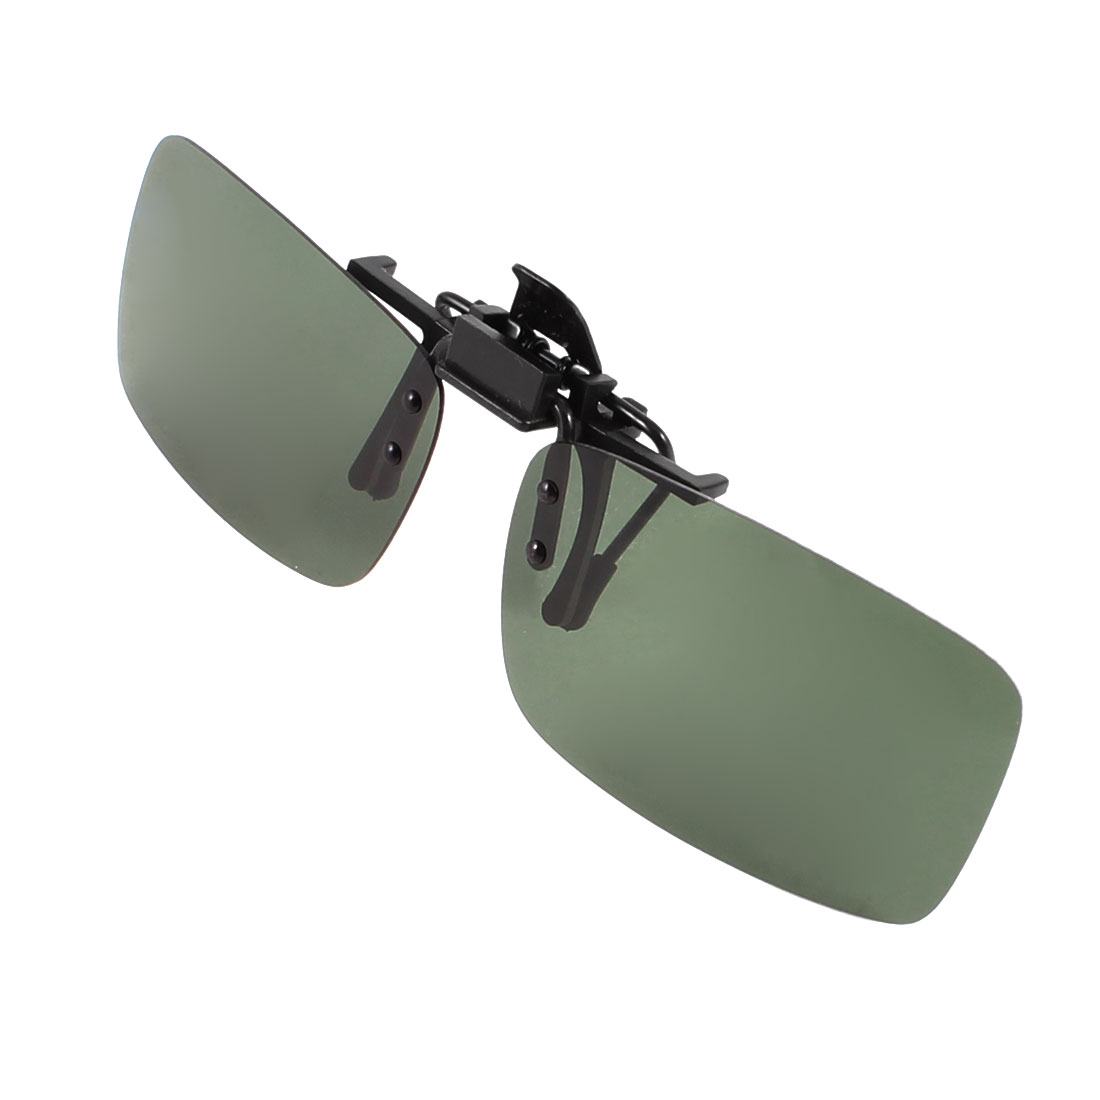 7845bddc22 Polarized Flip Up Clip on Sunglasses Dark Green Lens for Man Women - image  1 of zoomed image